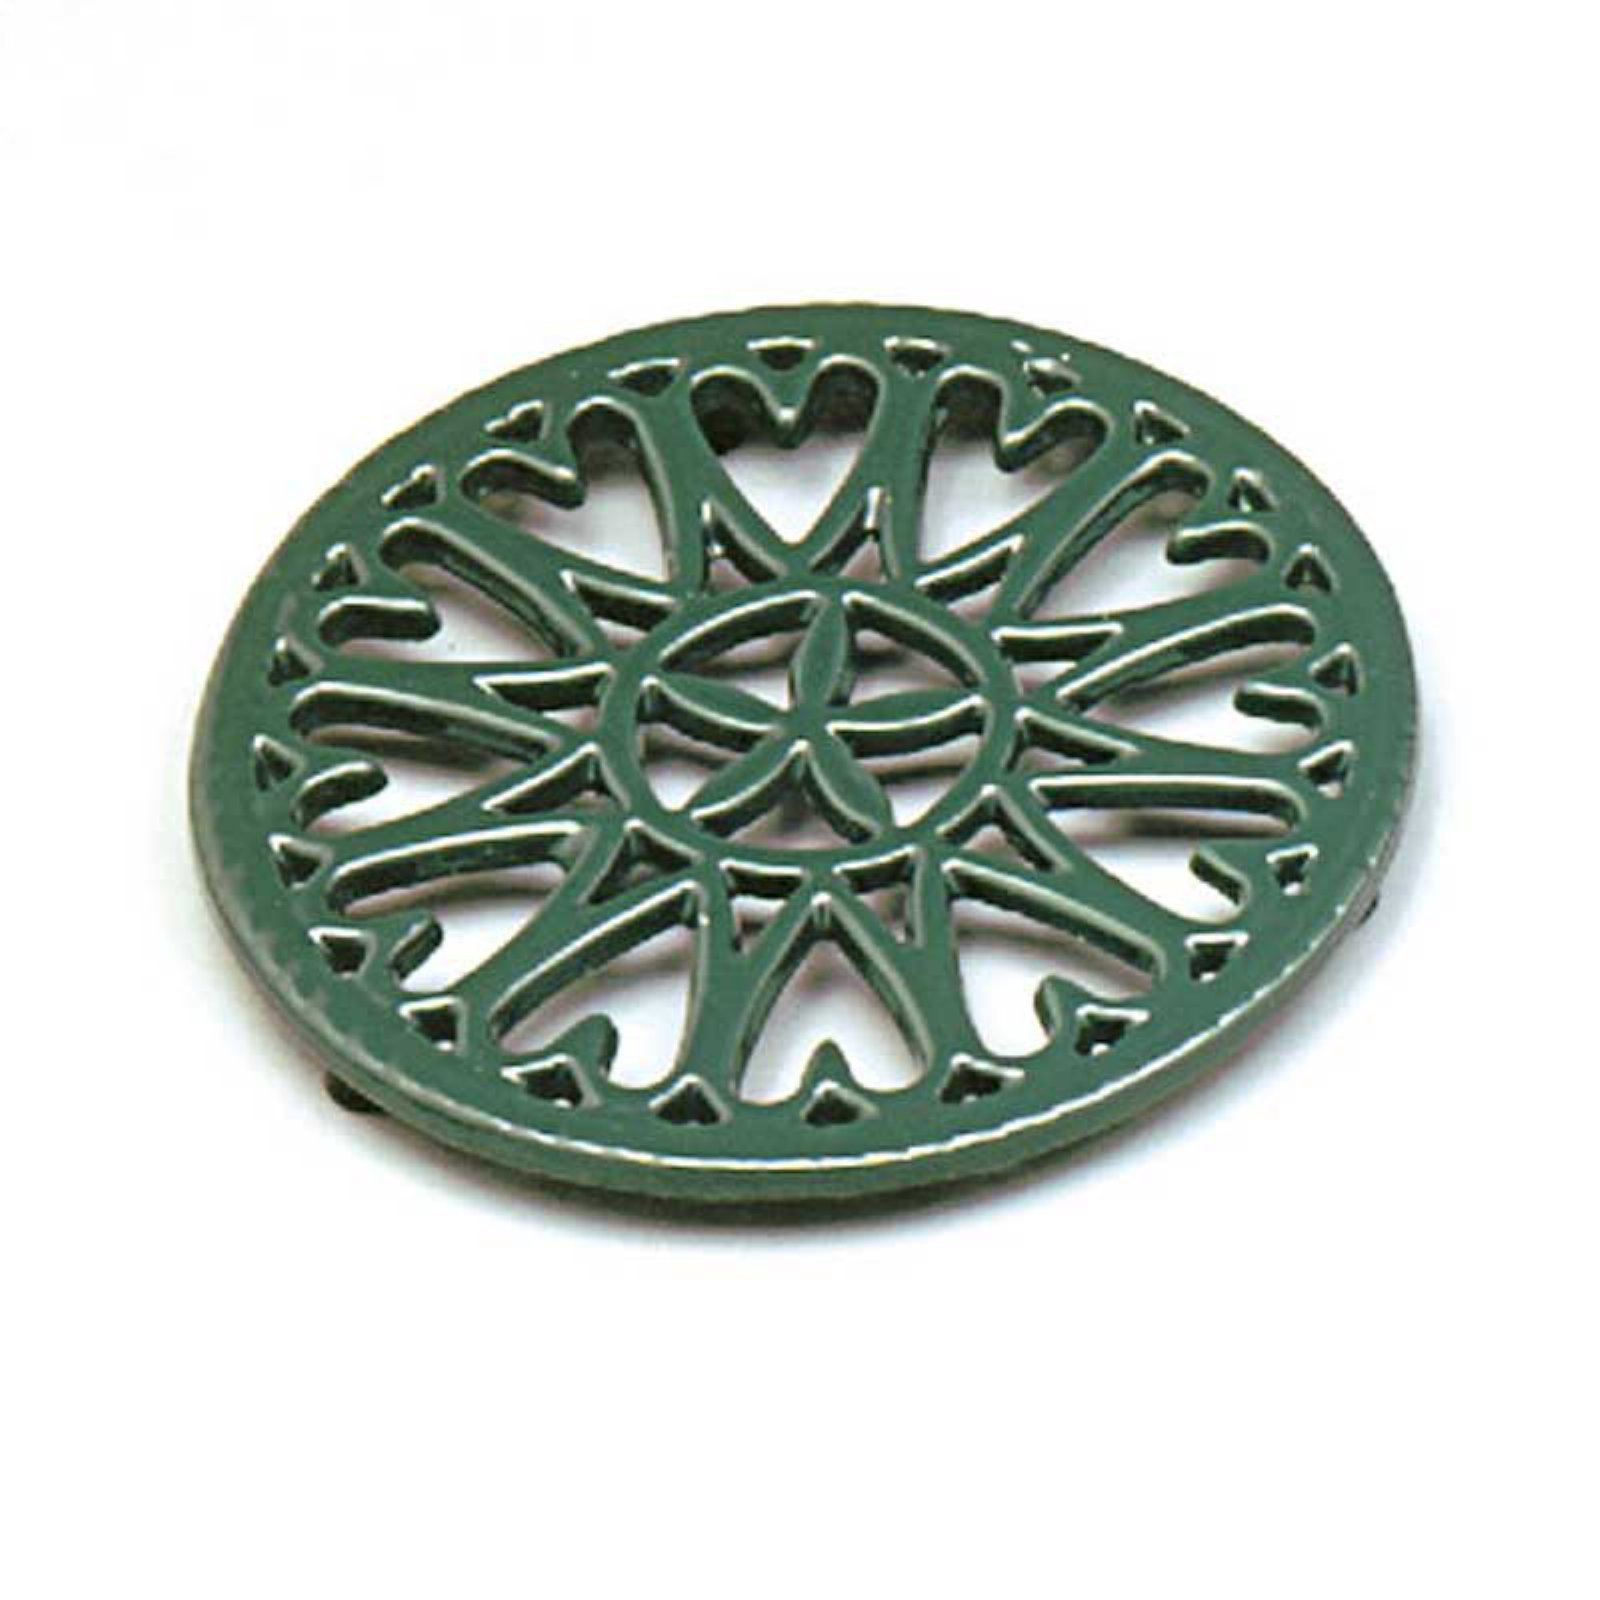 Minuteman International Sunburst Cast Iron Trivet